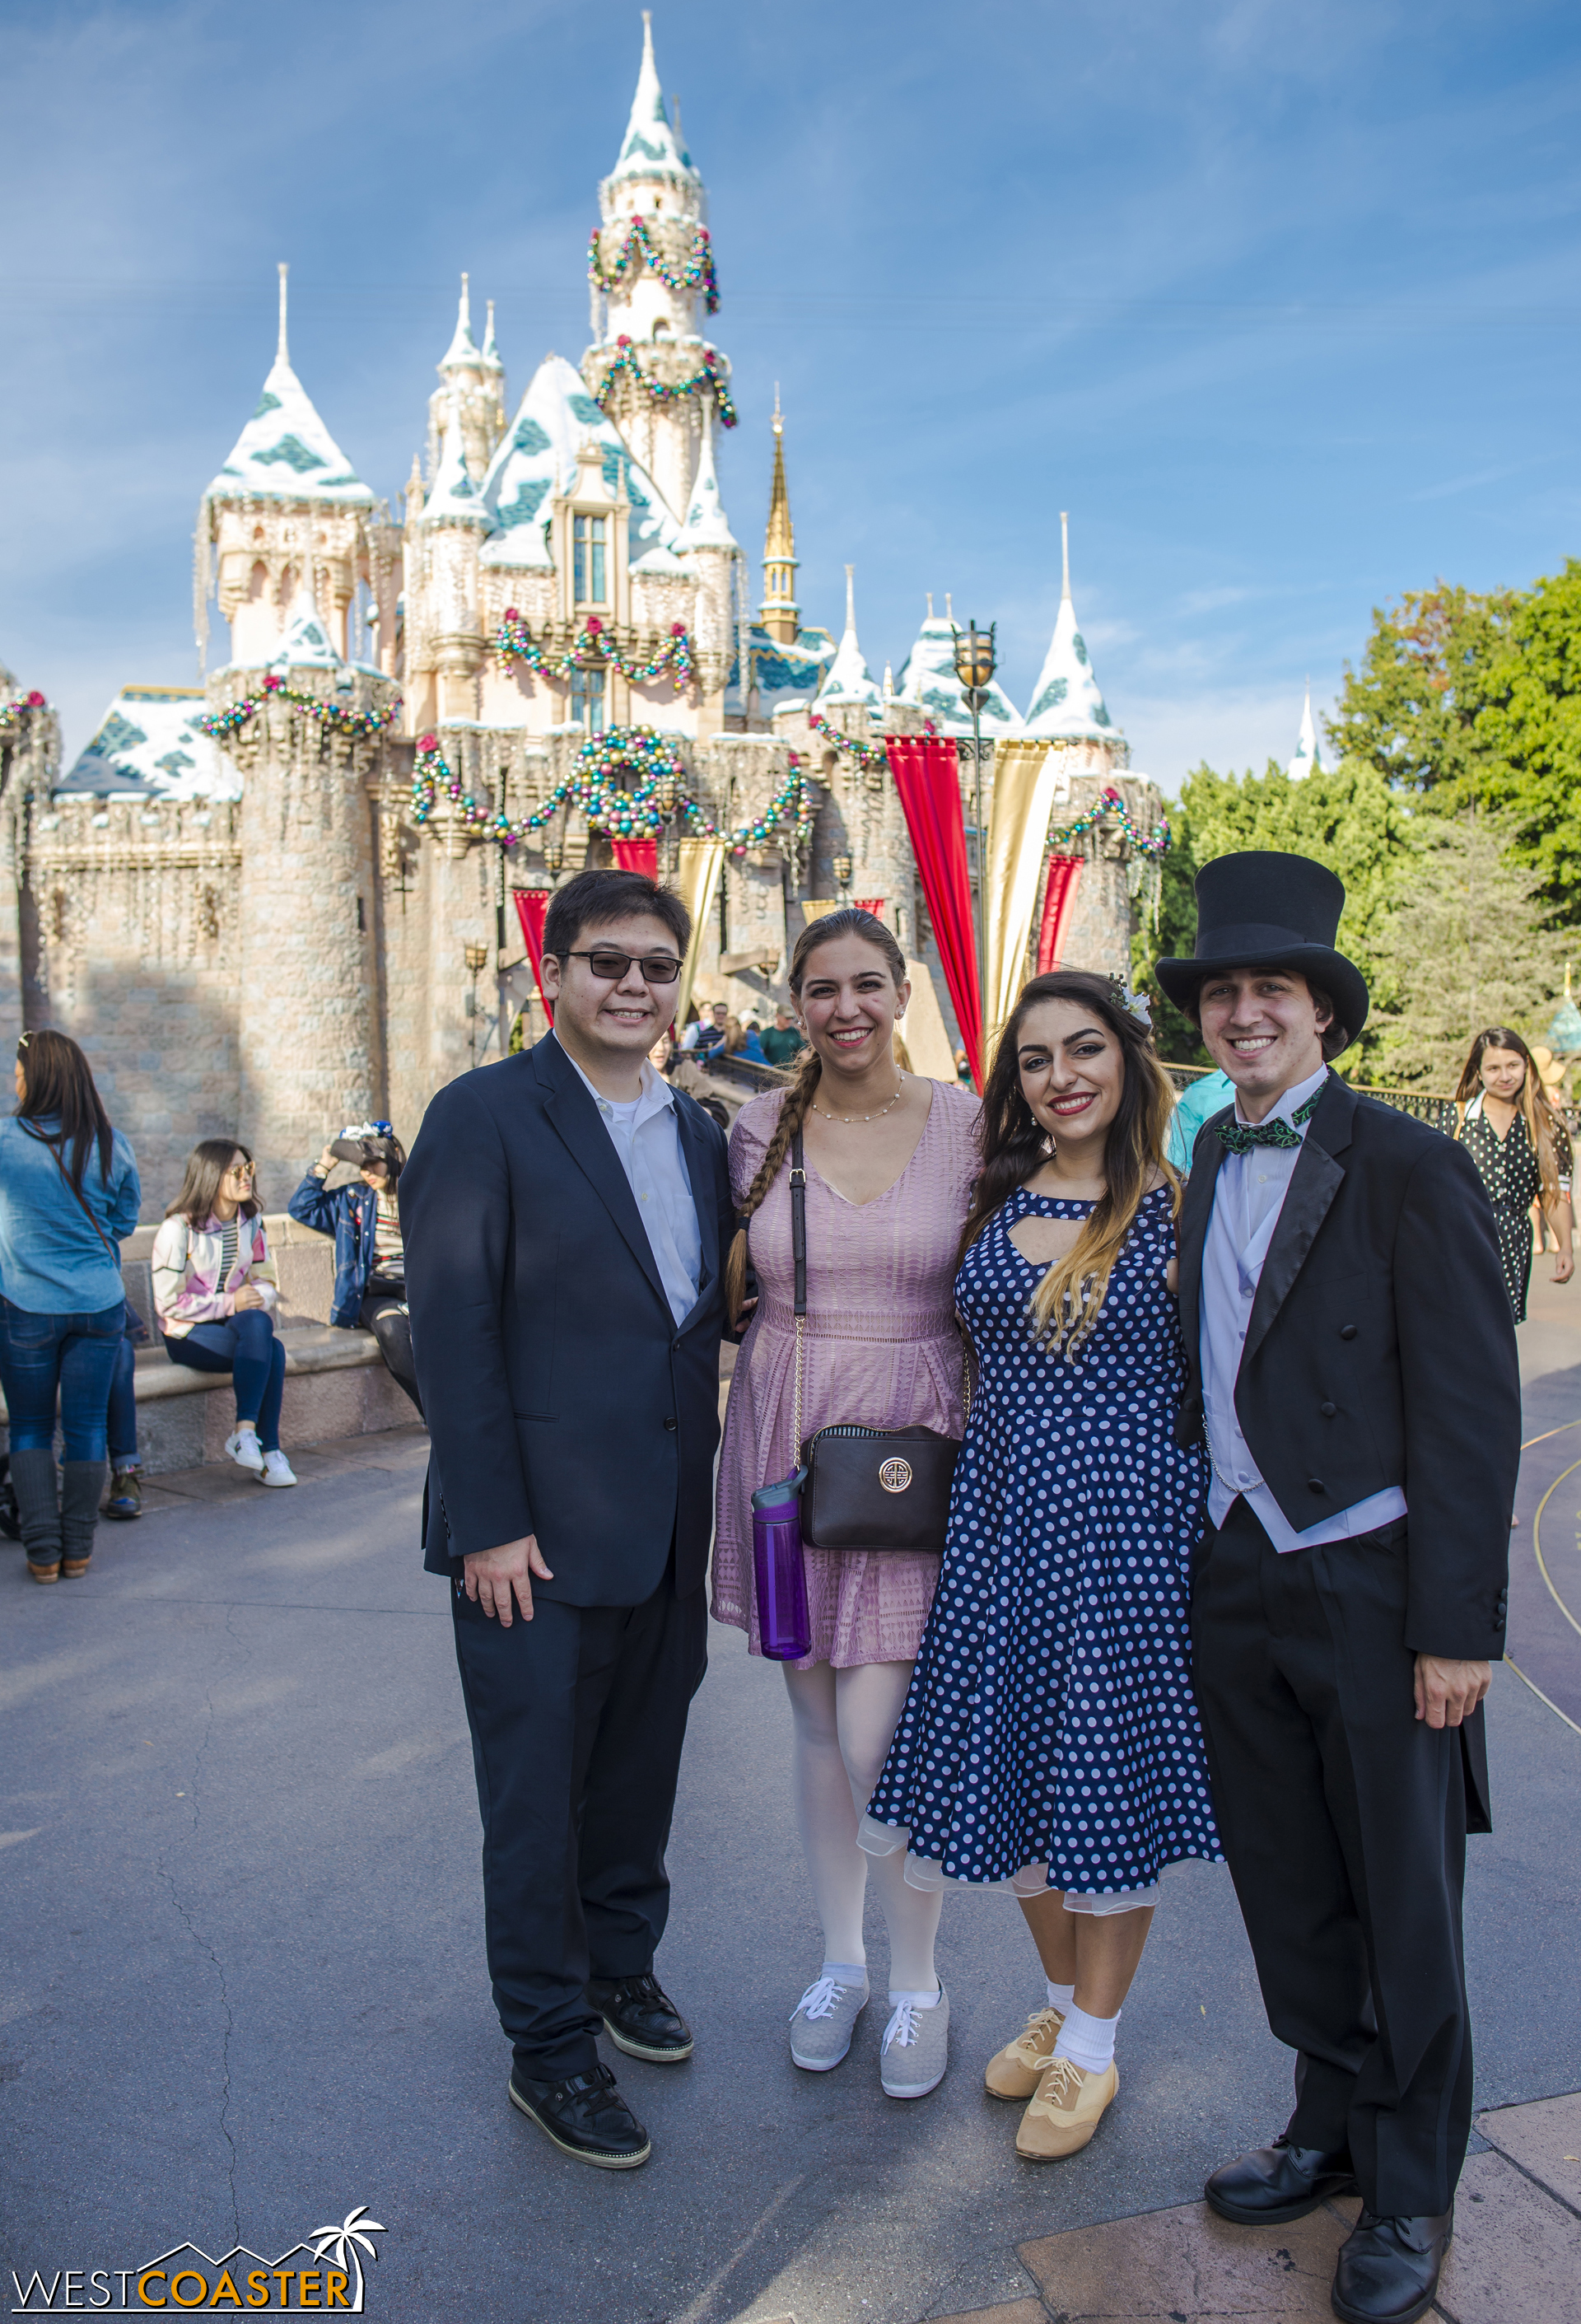 Also, Dapper Day rule: If I see you in a top hat, I must take your picture.